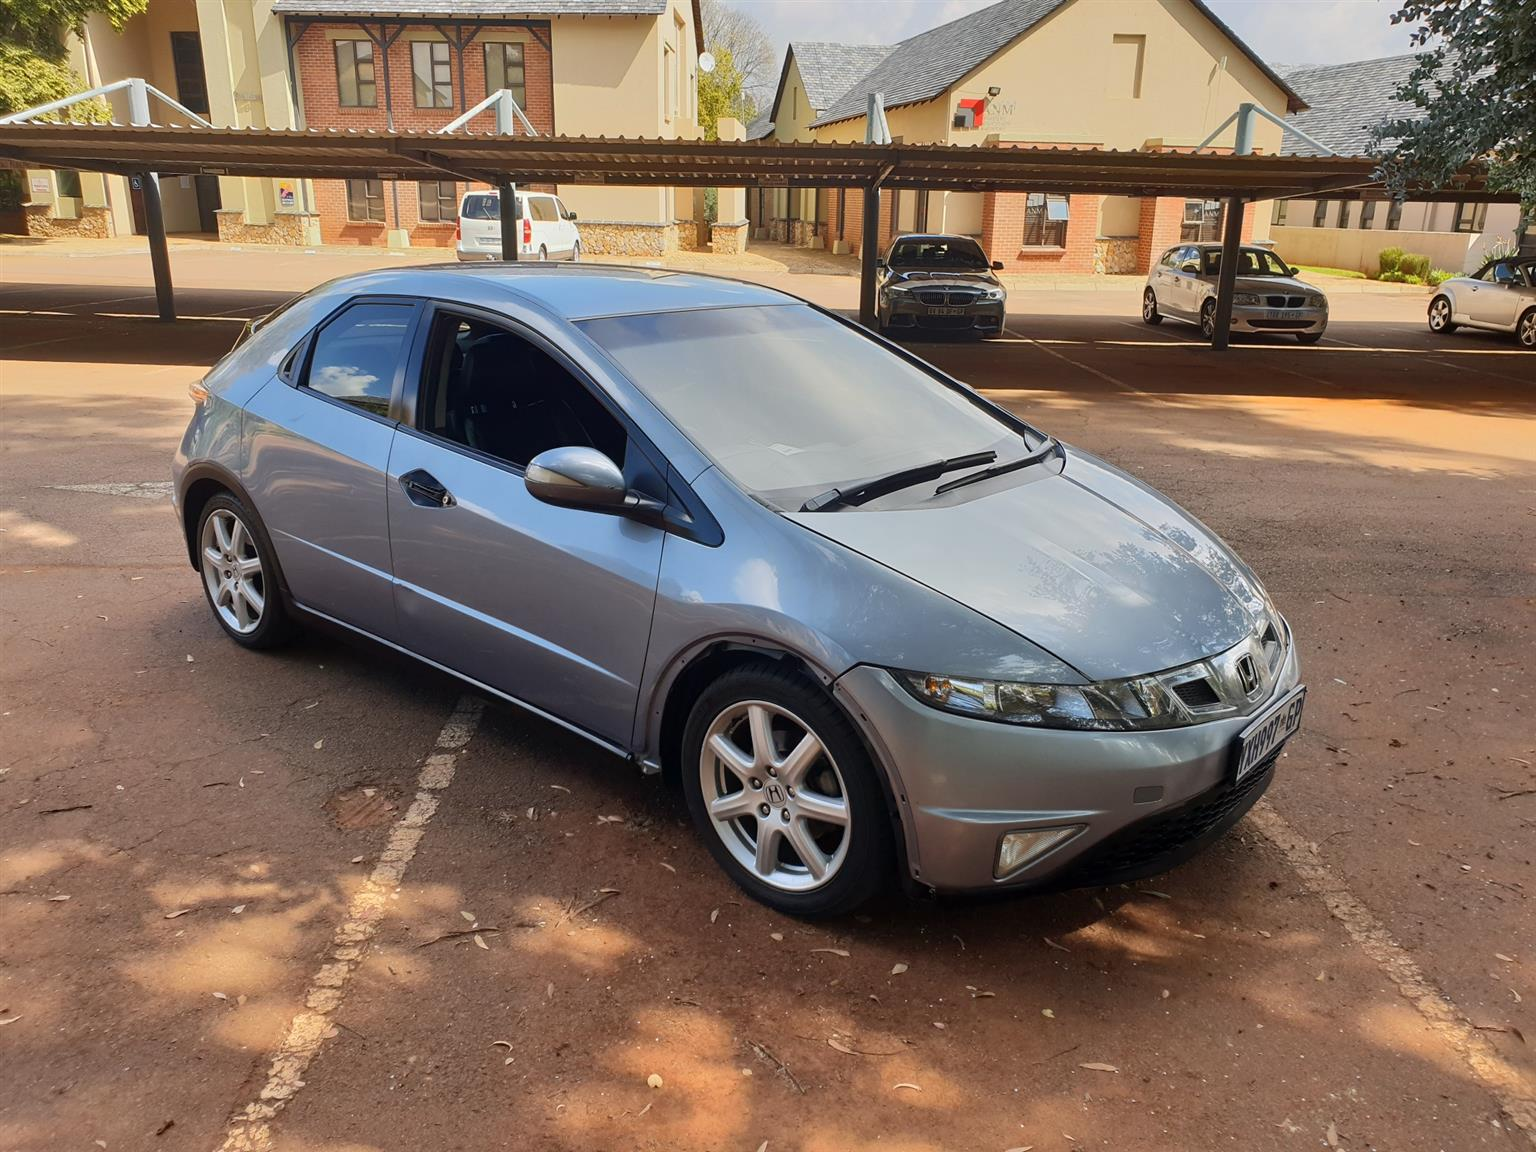 2010 Honda Civic hatch 1.8 Elegance